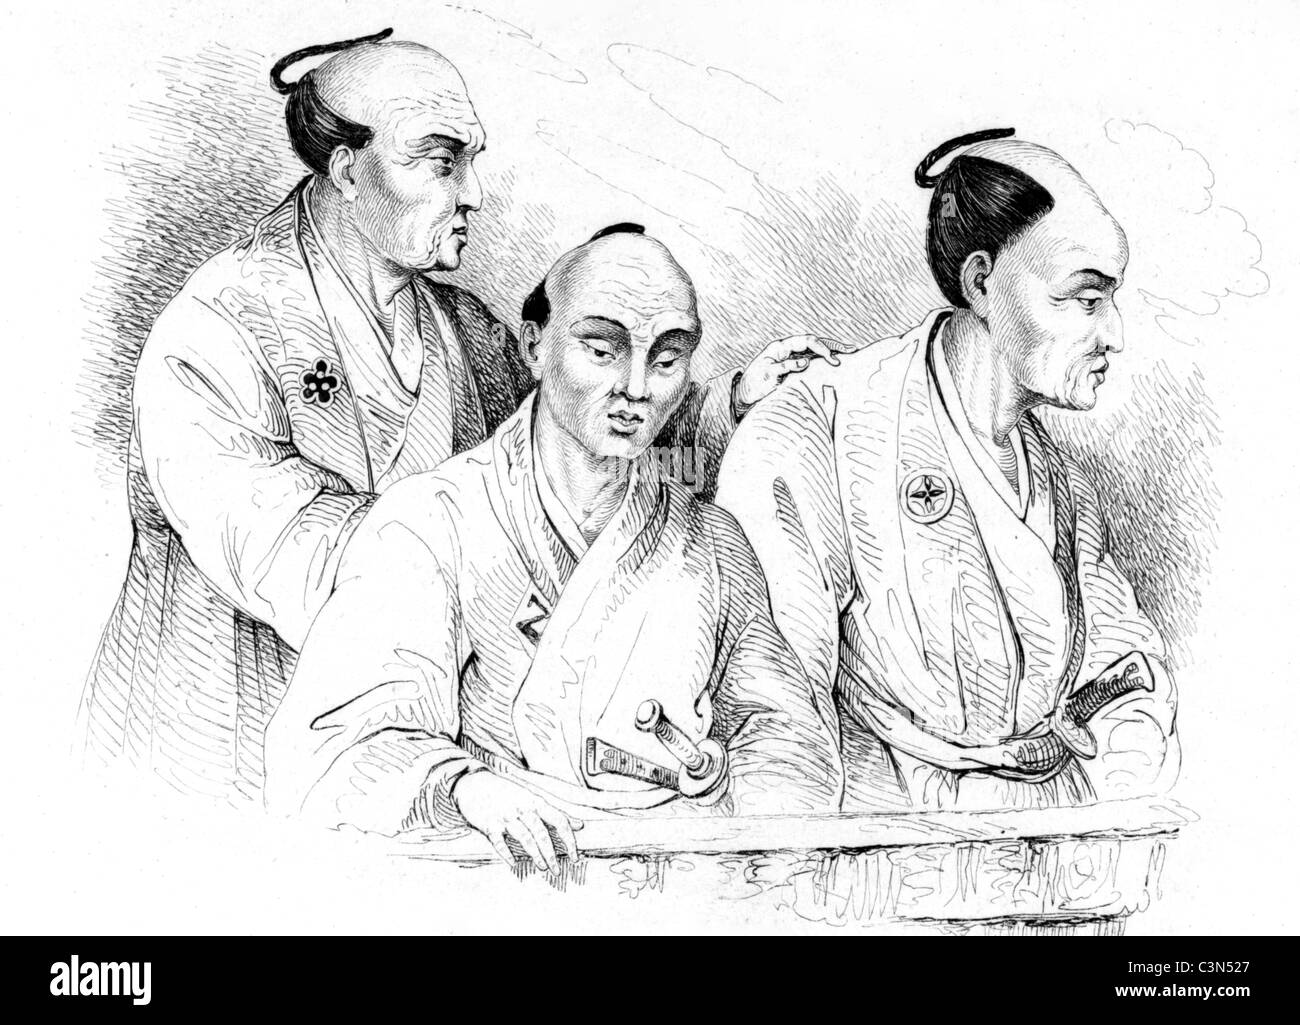 Portraits of Japanese in 19th Century on engraving from 1834. Engraved by Beyer after a drawning by Louis Auguste - Stock Image